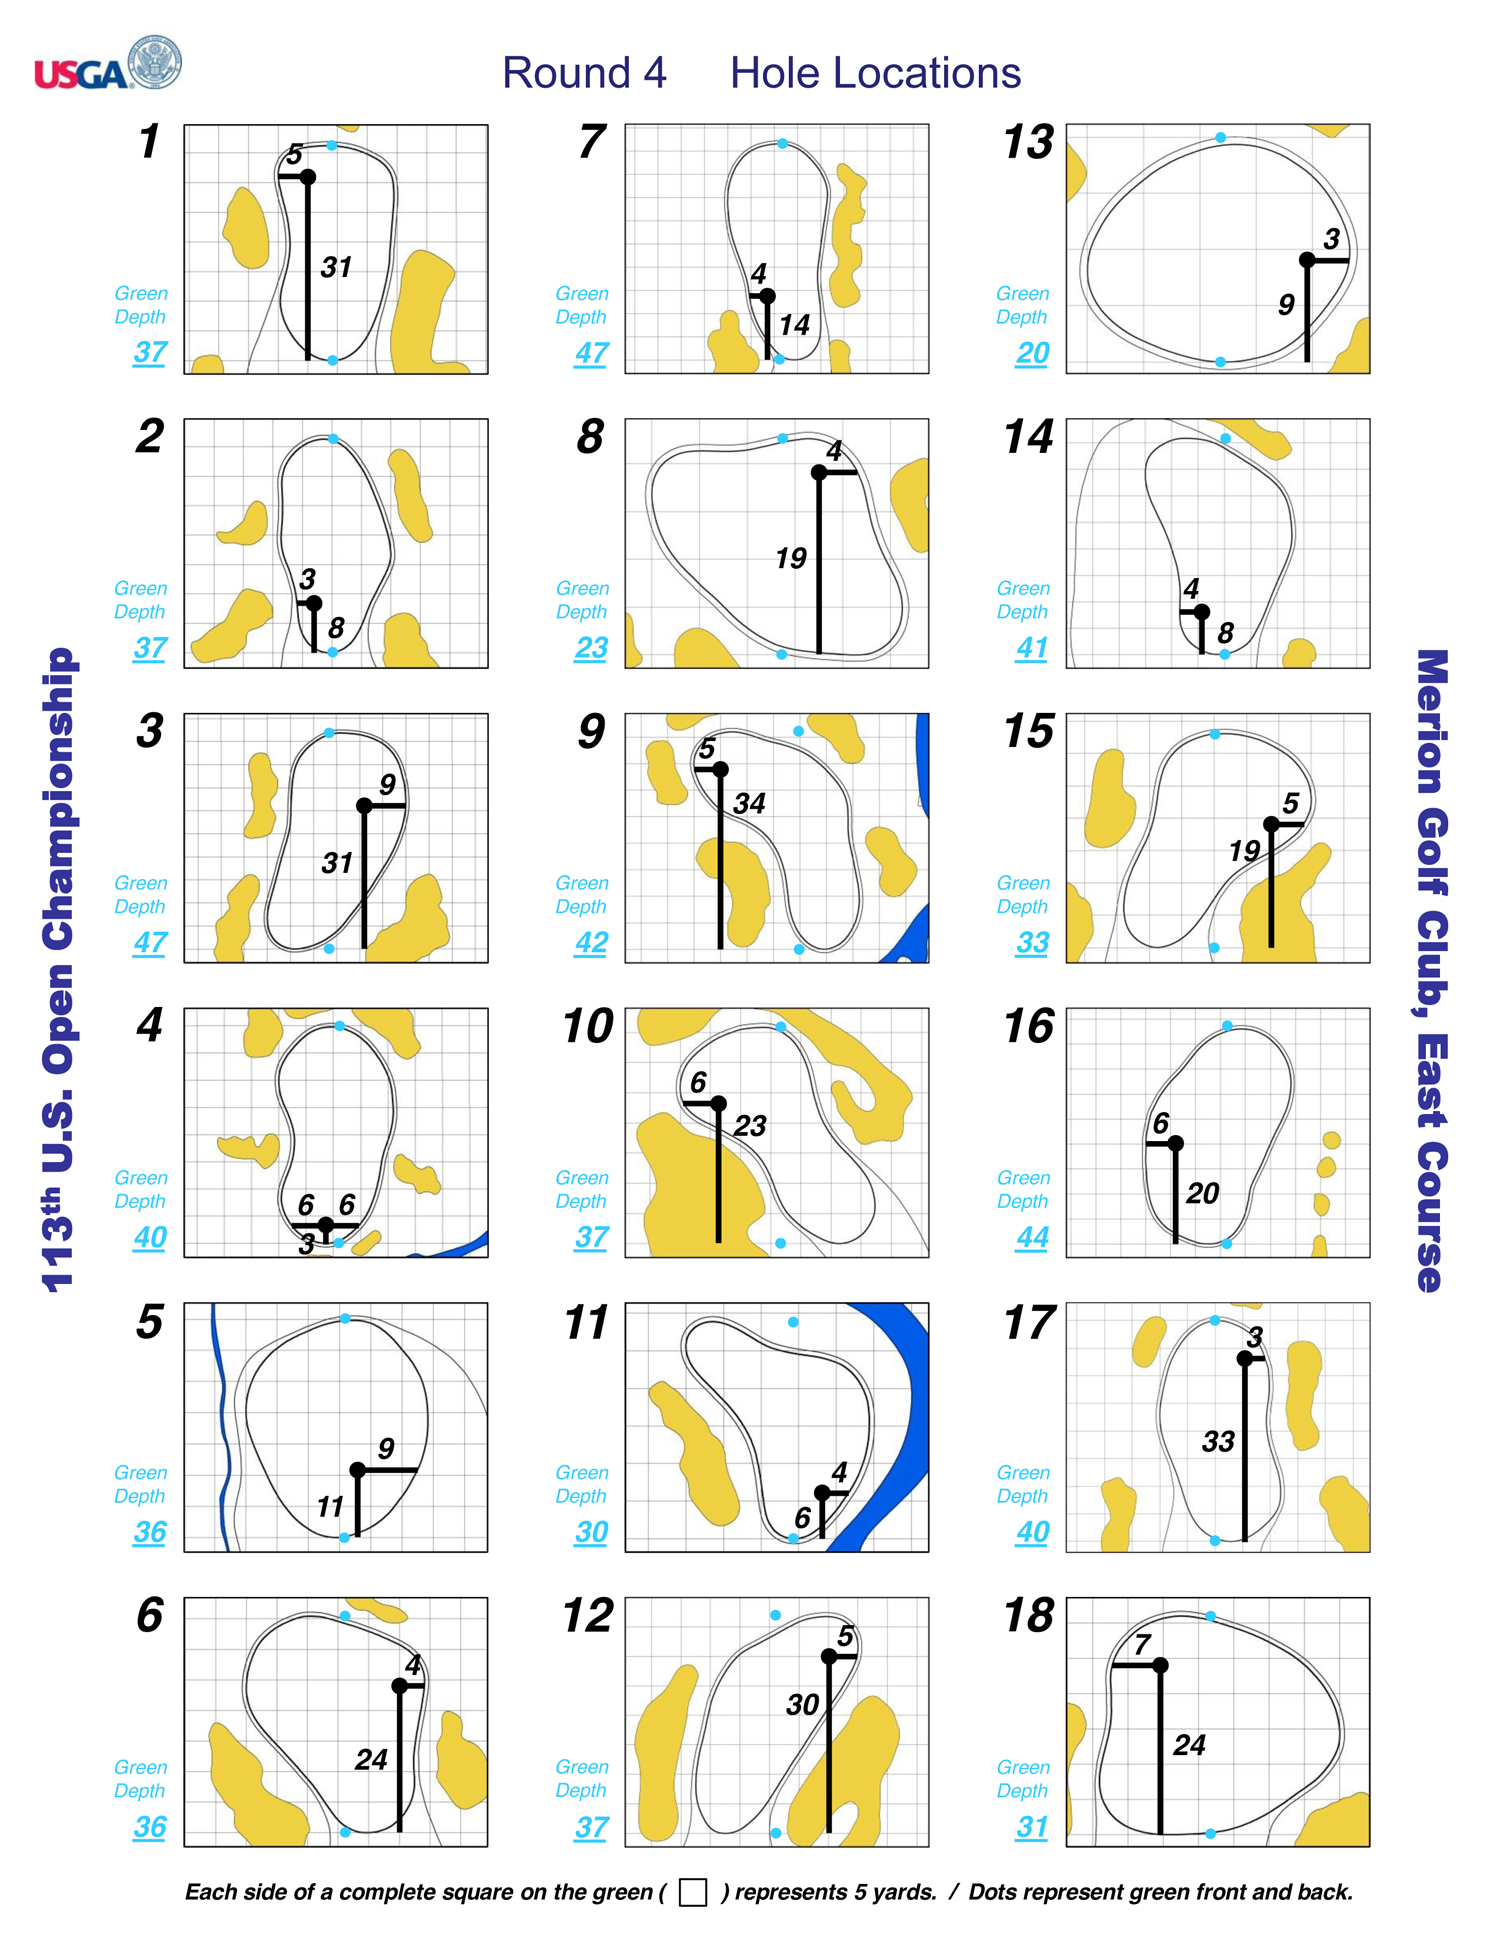 The fourth-round hole locations for the U.S. Open at Merion.